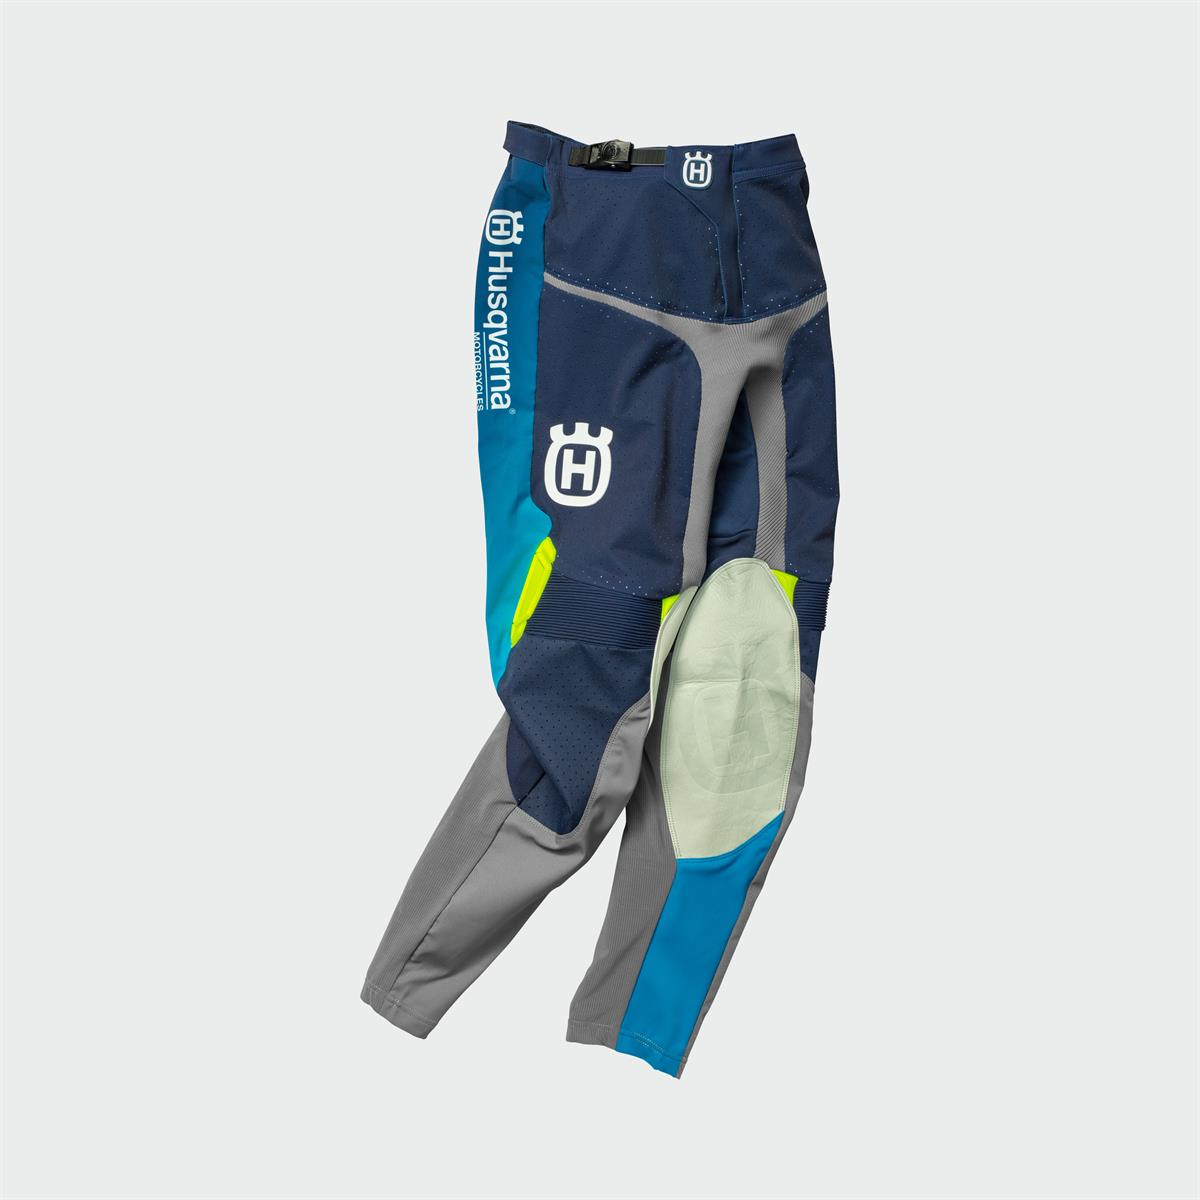 Husqvarna Functional Clothing - GOTLAND PANTS